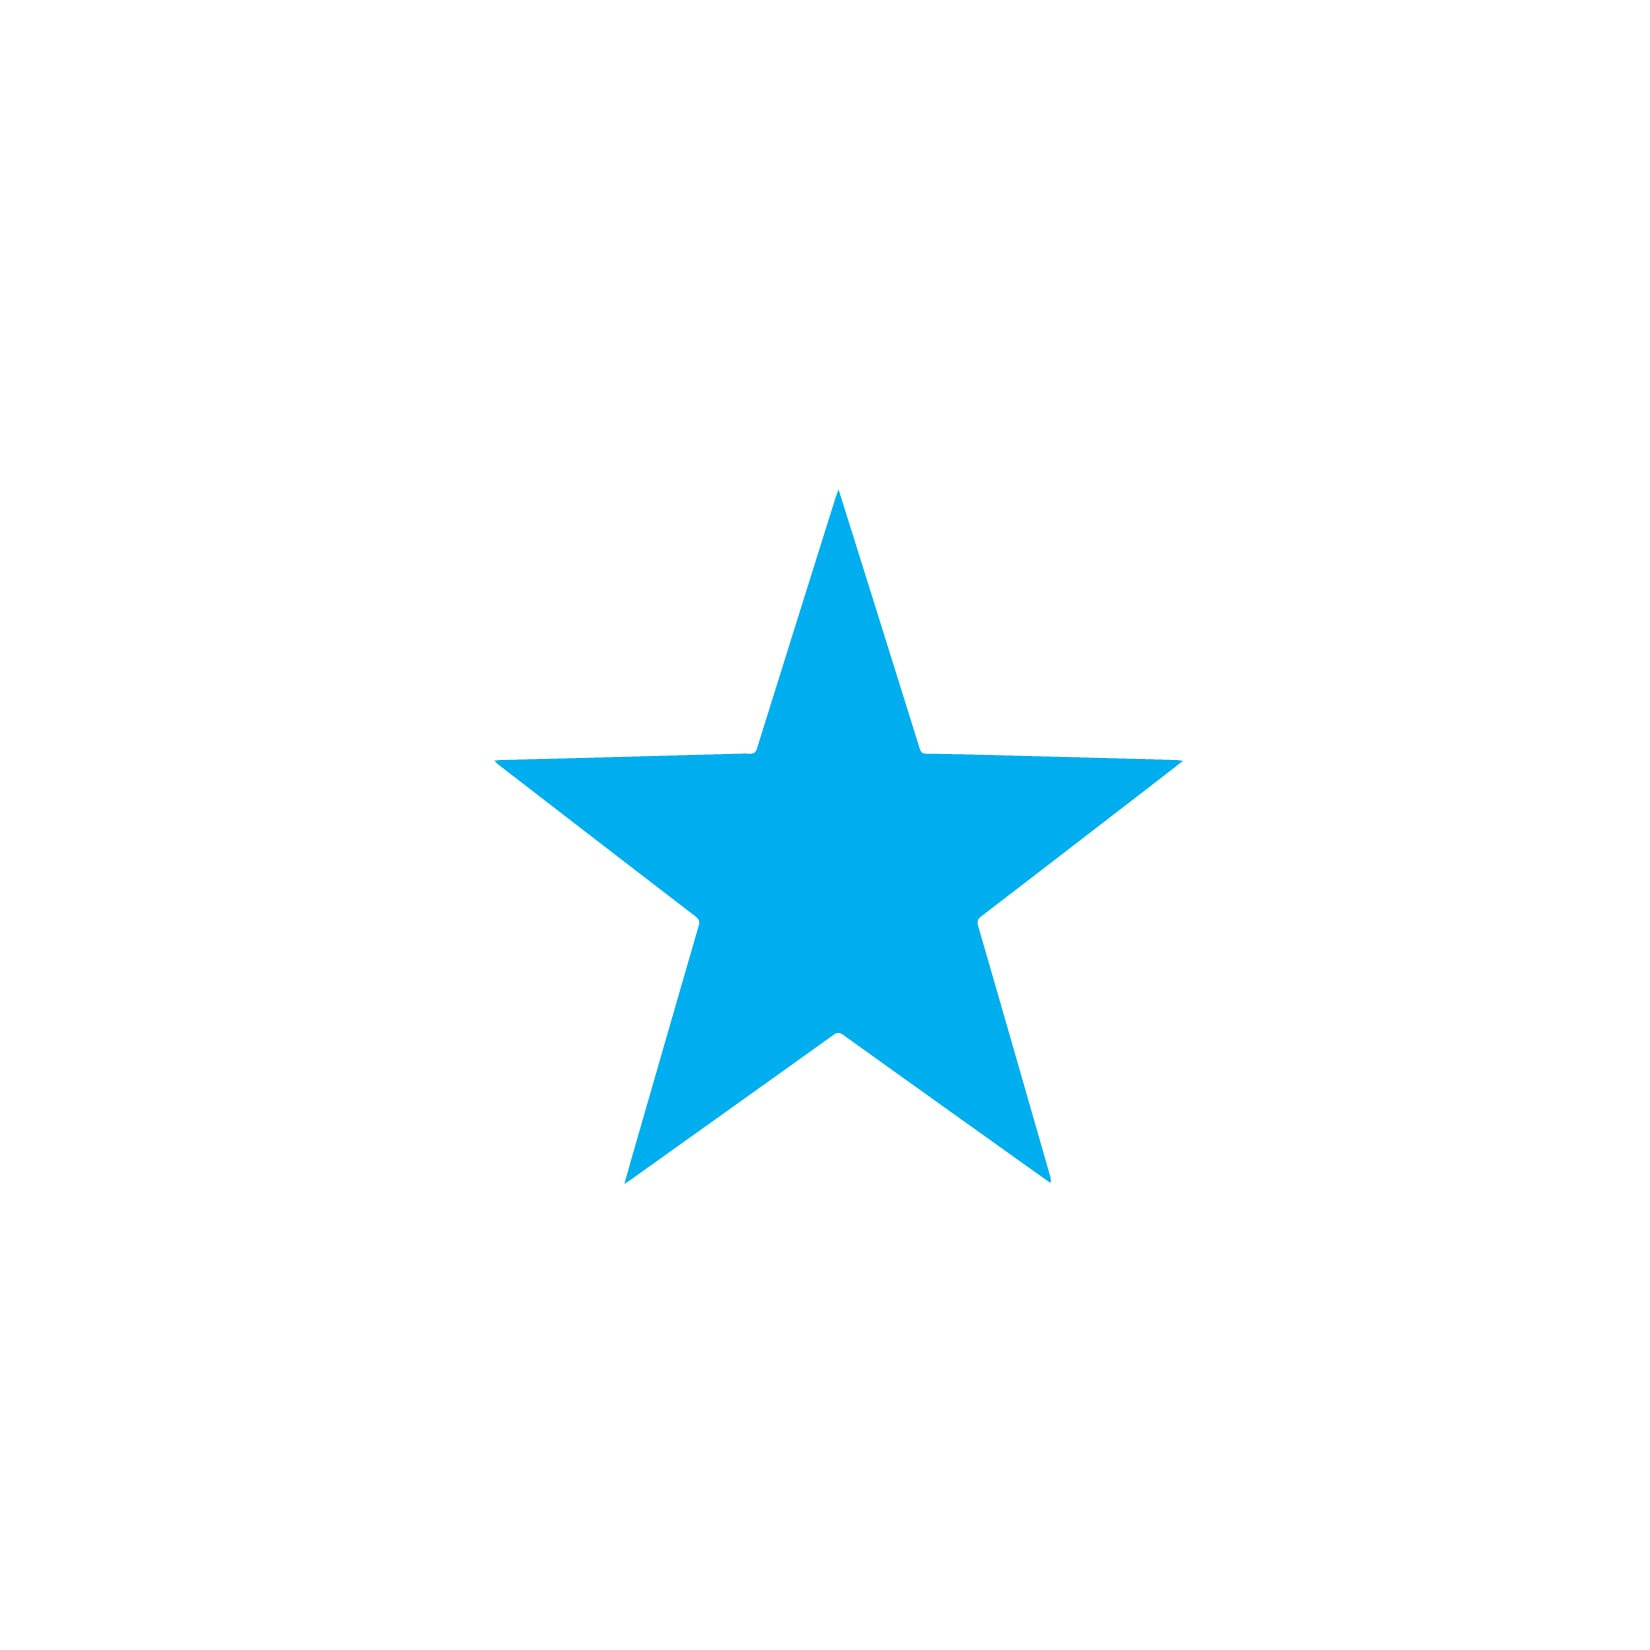 Collective-Media_Brand-Identity_Media star.jpg